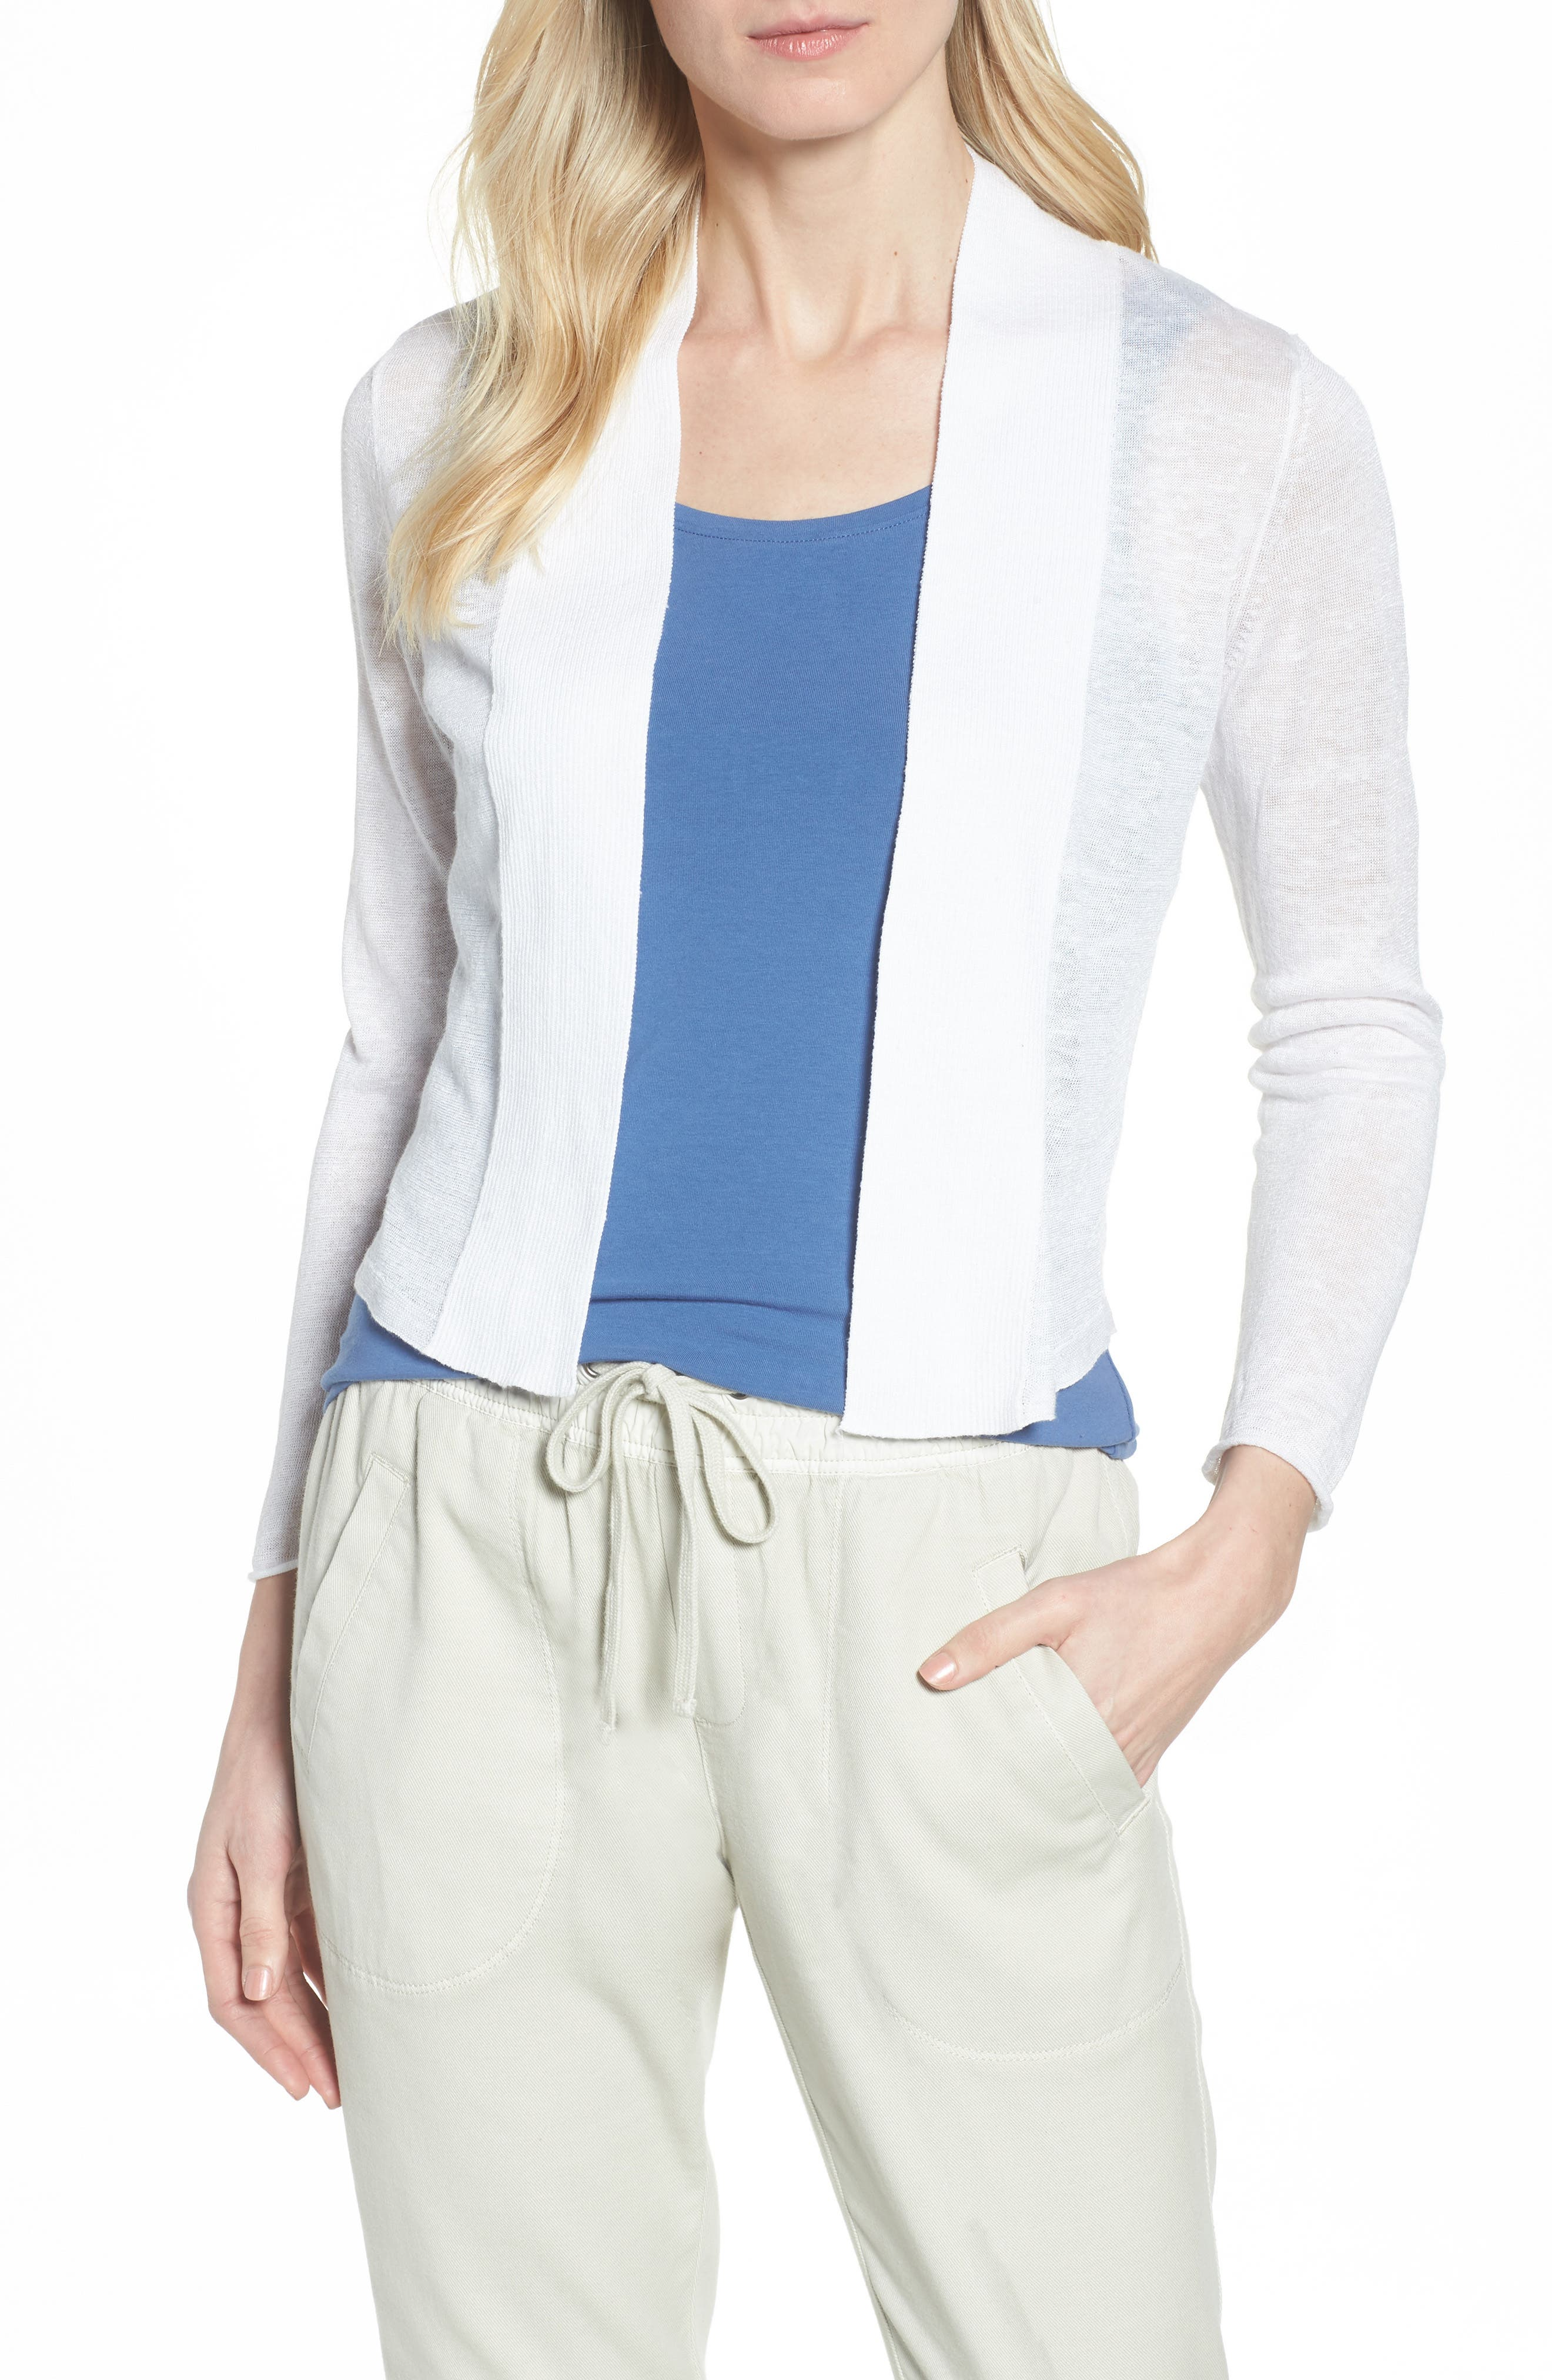 NIC + ZOE Daybreak Open Front Cardigan,                         Main,                         color, Paper White